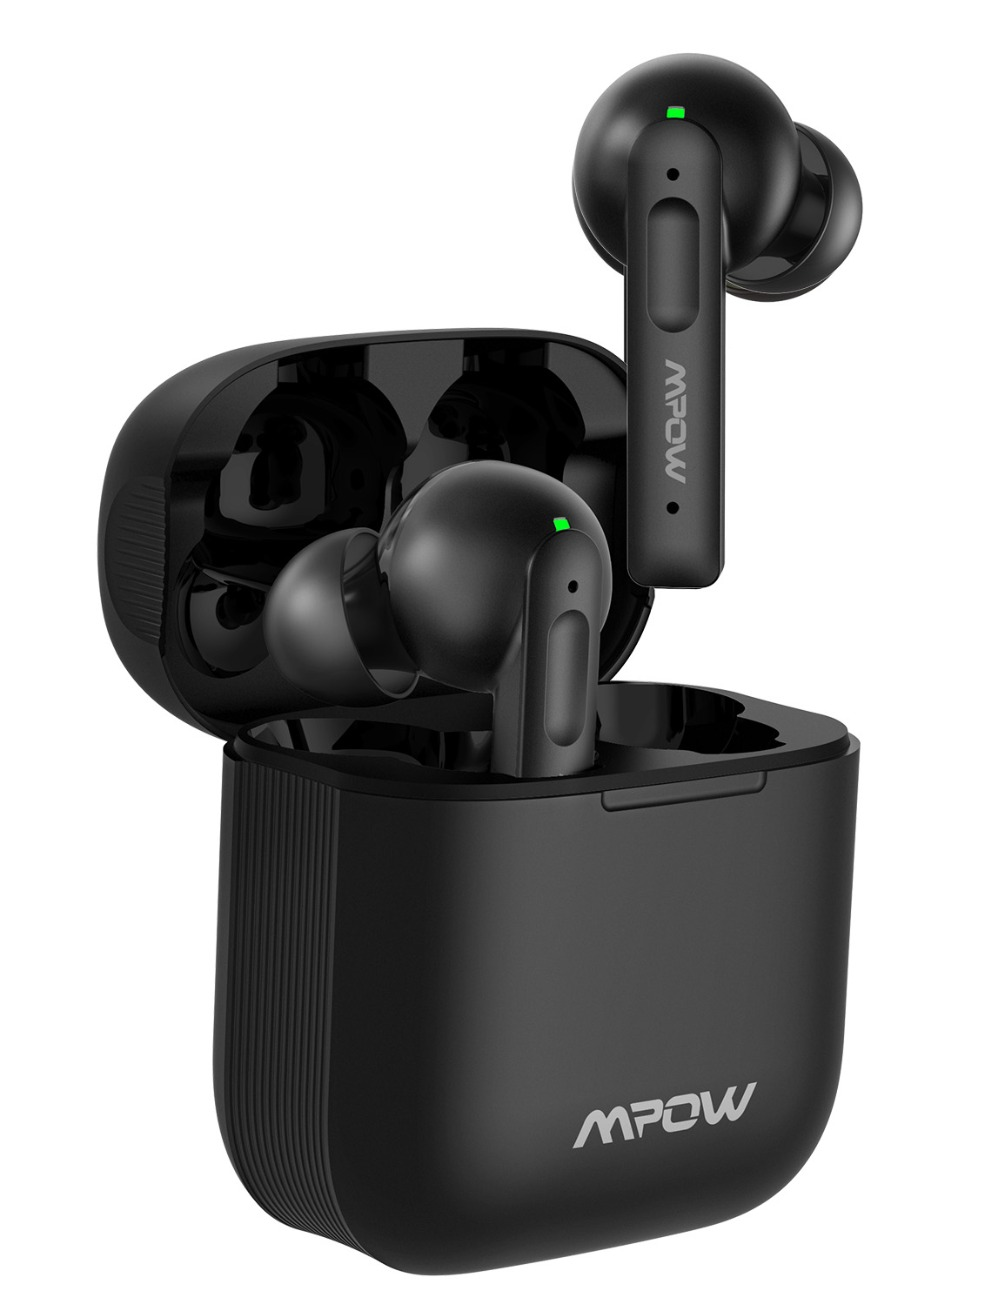 Mpow X3 ANC True Wireless Earbuds Bluetooth 5.0 Wireless Earphones Active Noise Canceling Headphone Touch Control for Smartphone (9)